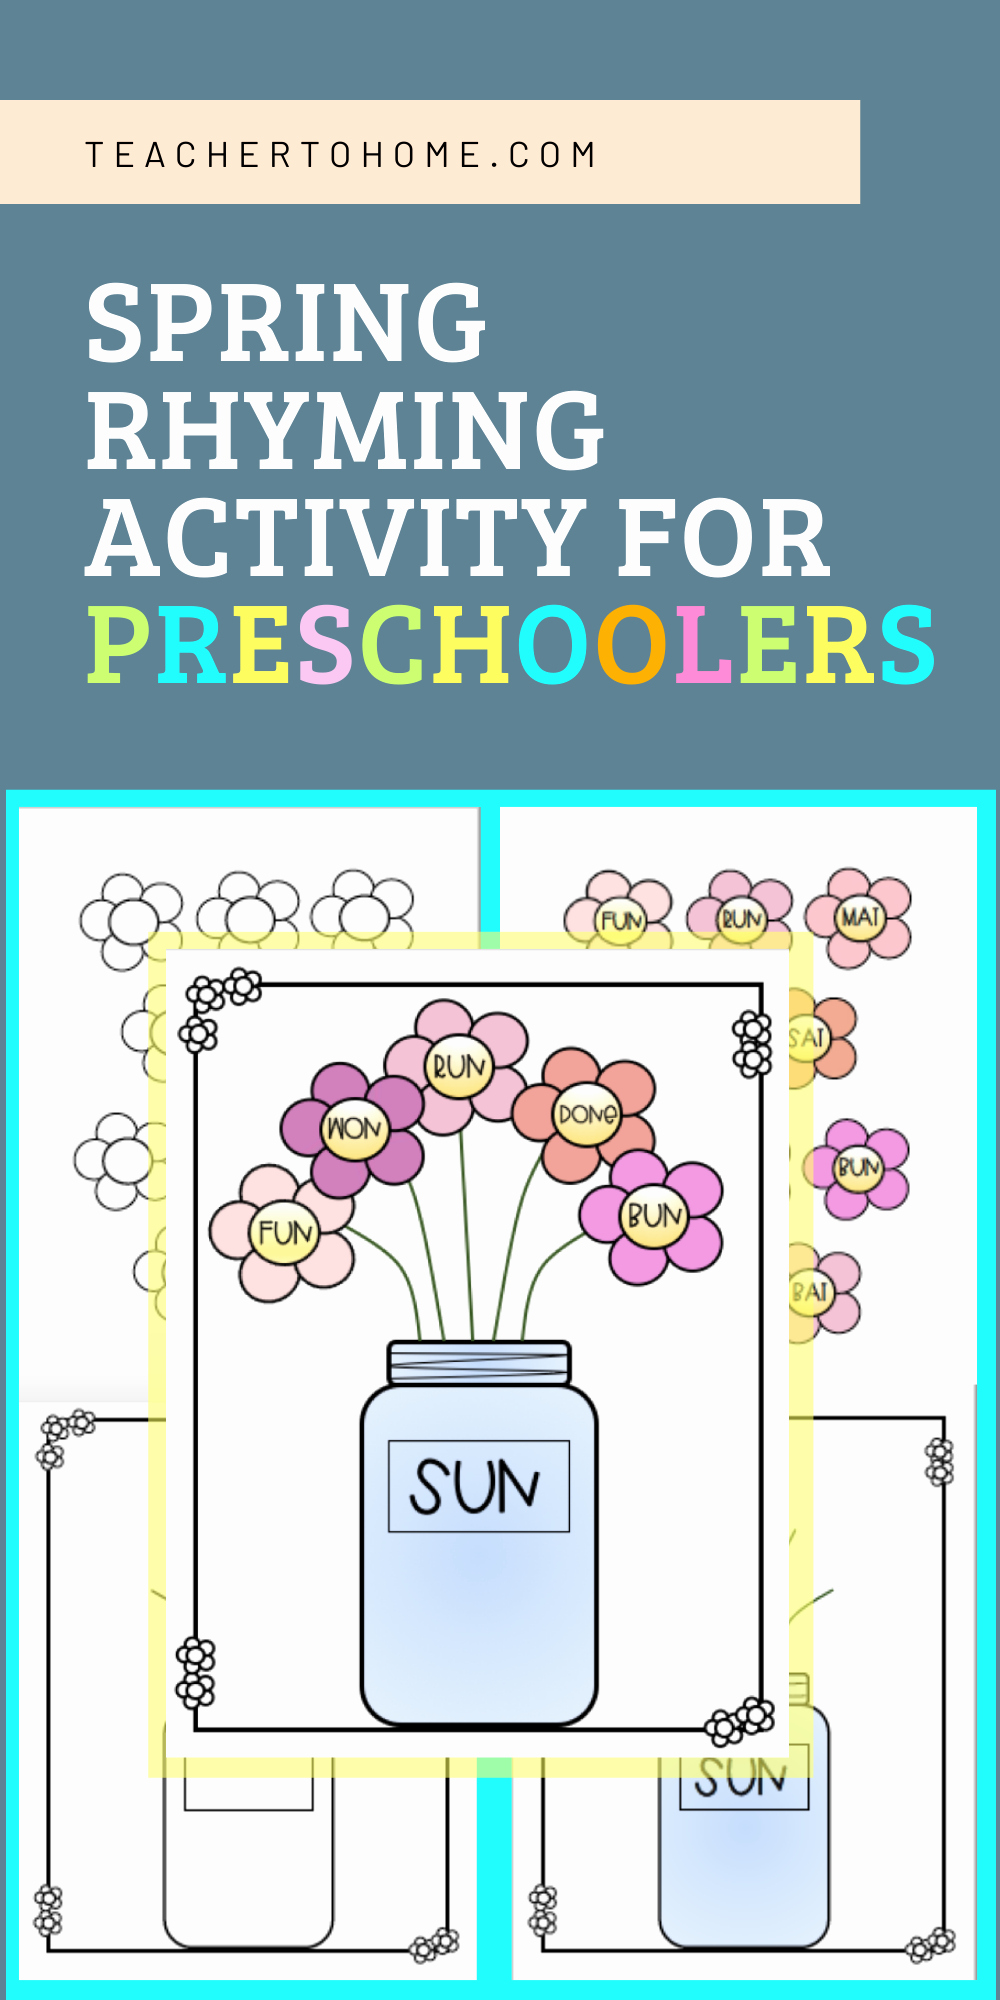 Rhyming Worksheets for Preschoolers New Rhyming Activities for Preschoolers at Home In 2020